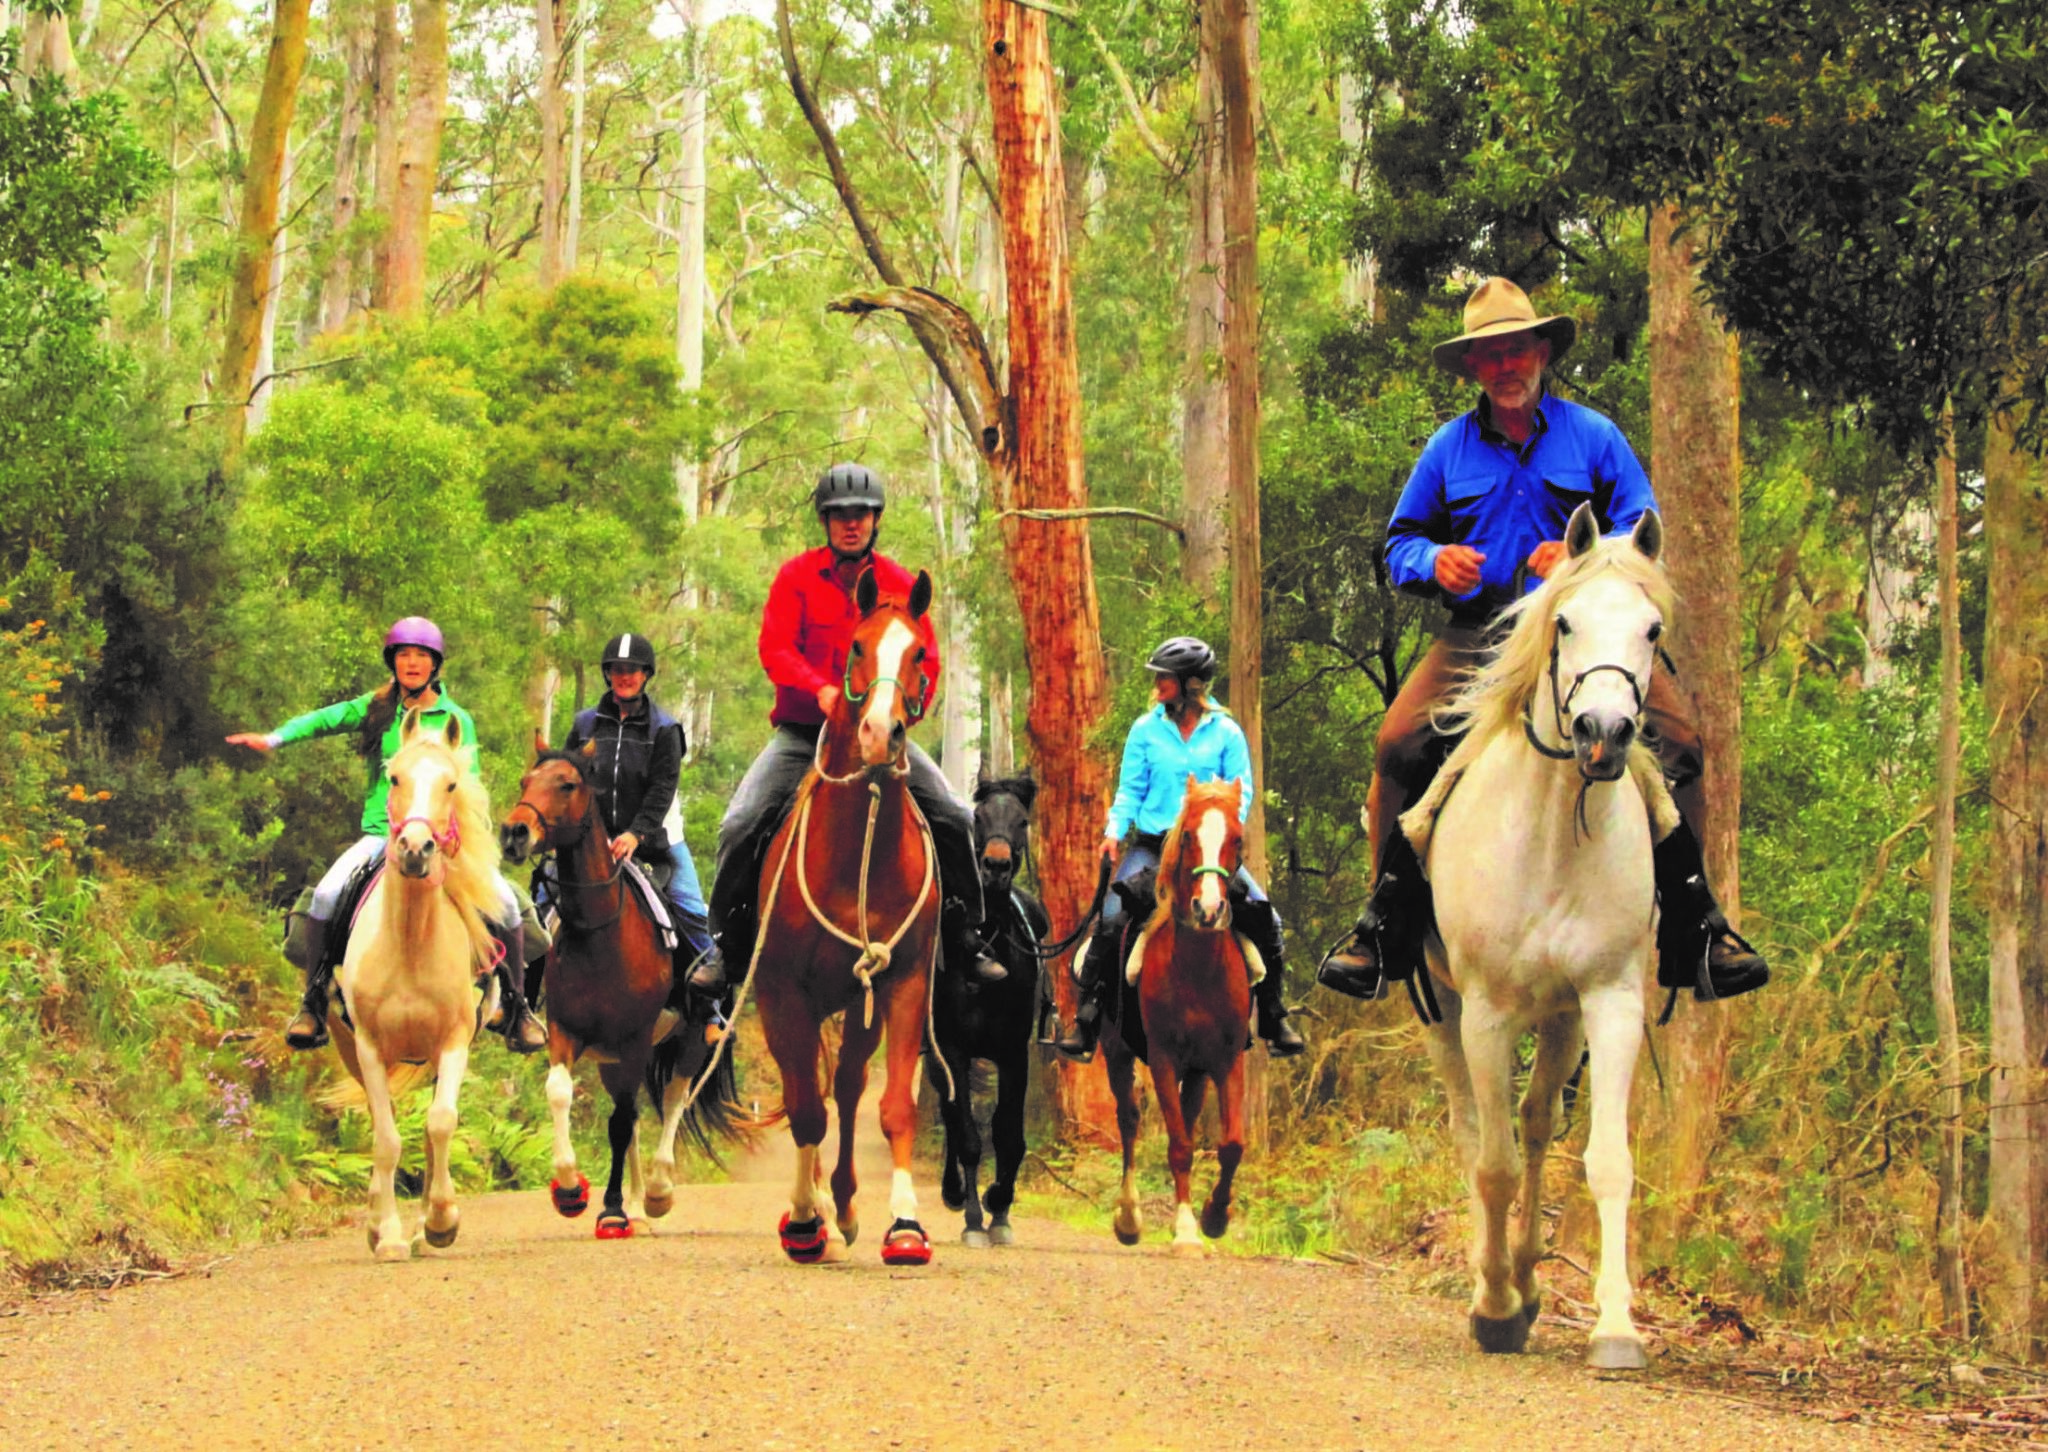 Globetrotting horse riding holiday Tassie Tiger Trail horse breed Arabian